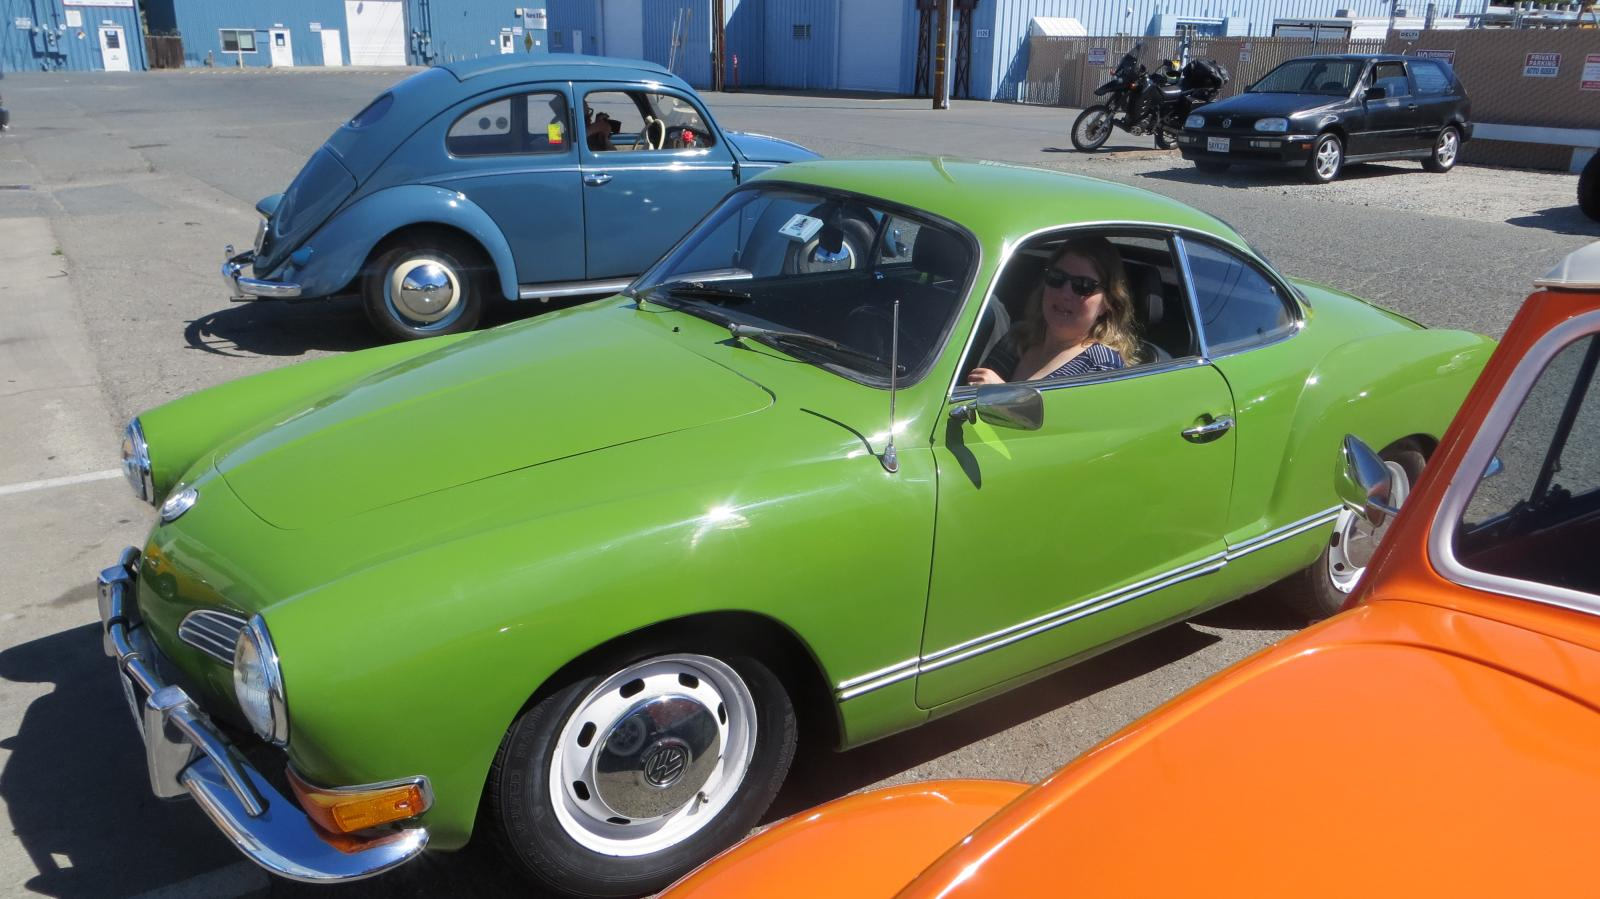 Kathy's '71 Ghia at the Open House event at LaVere's, Concord, CA